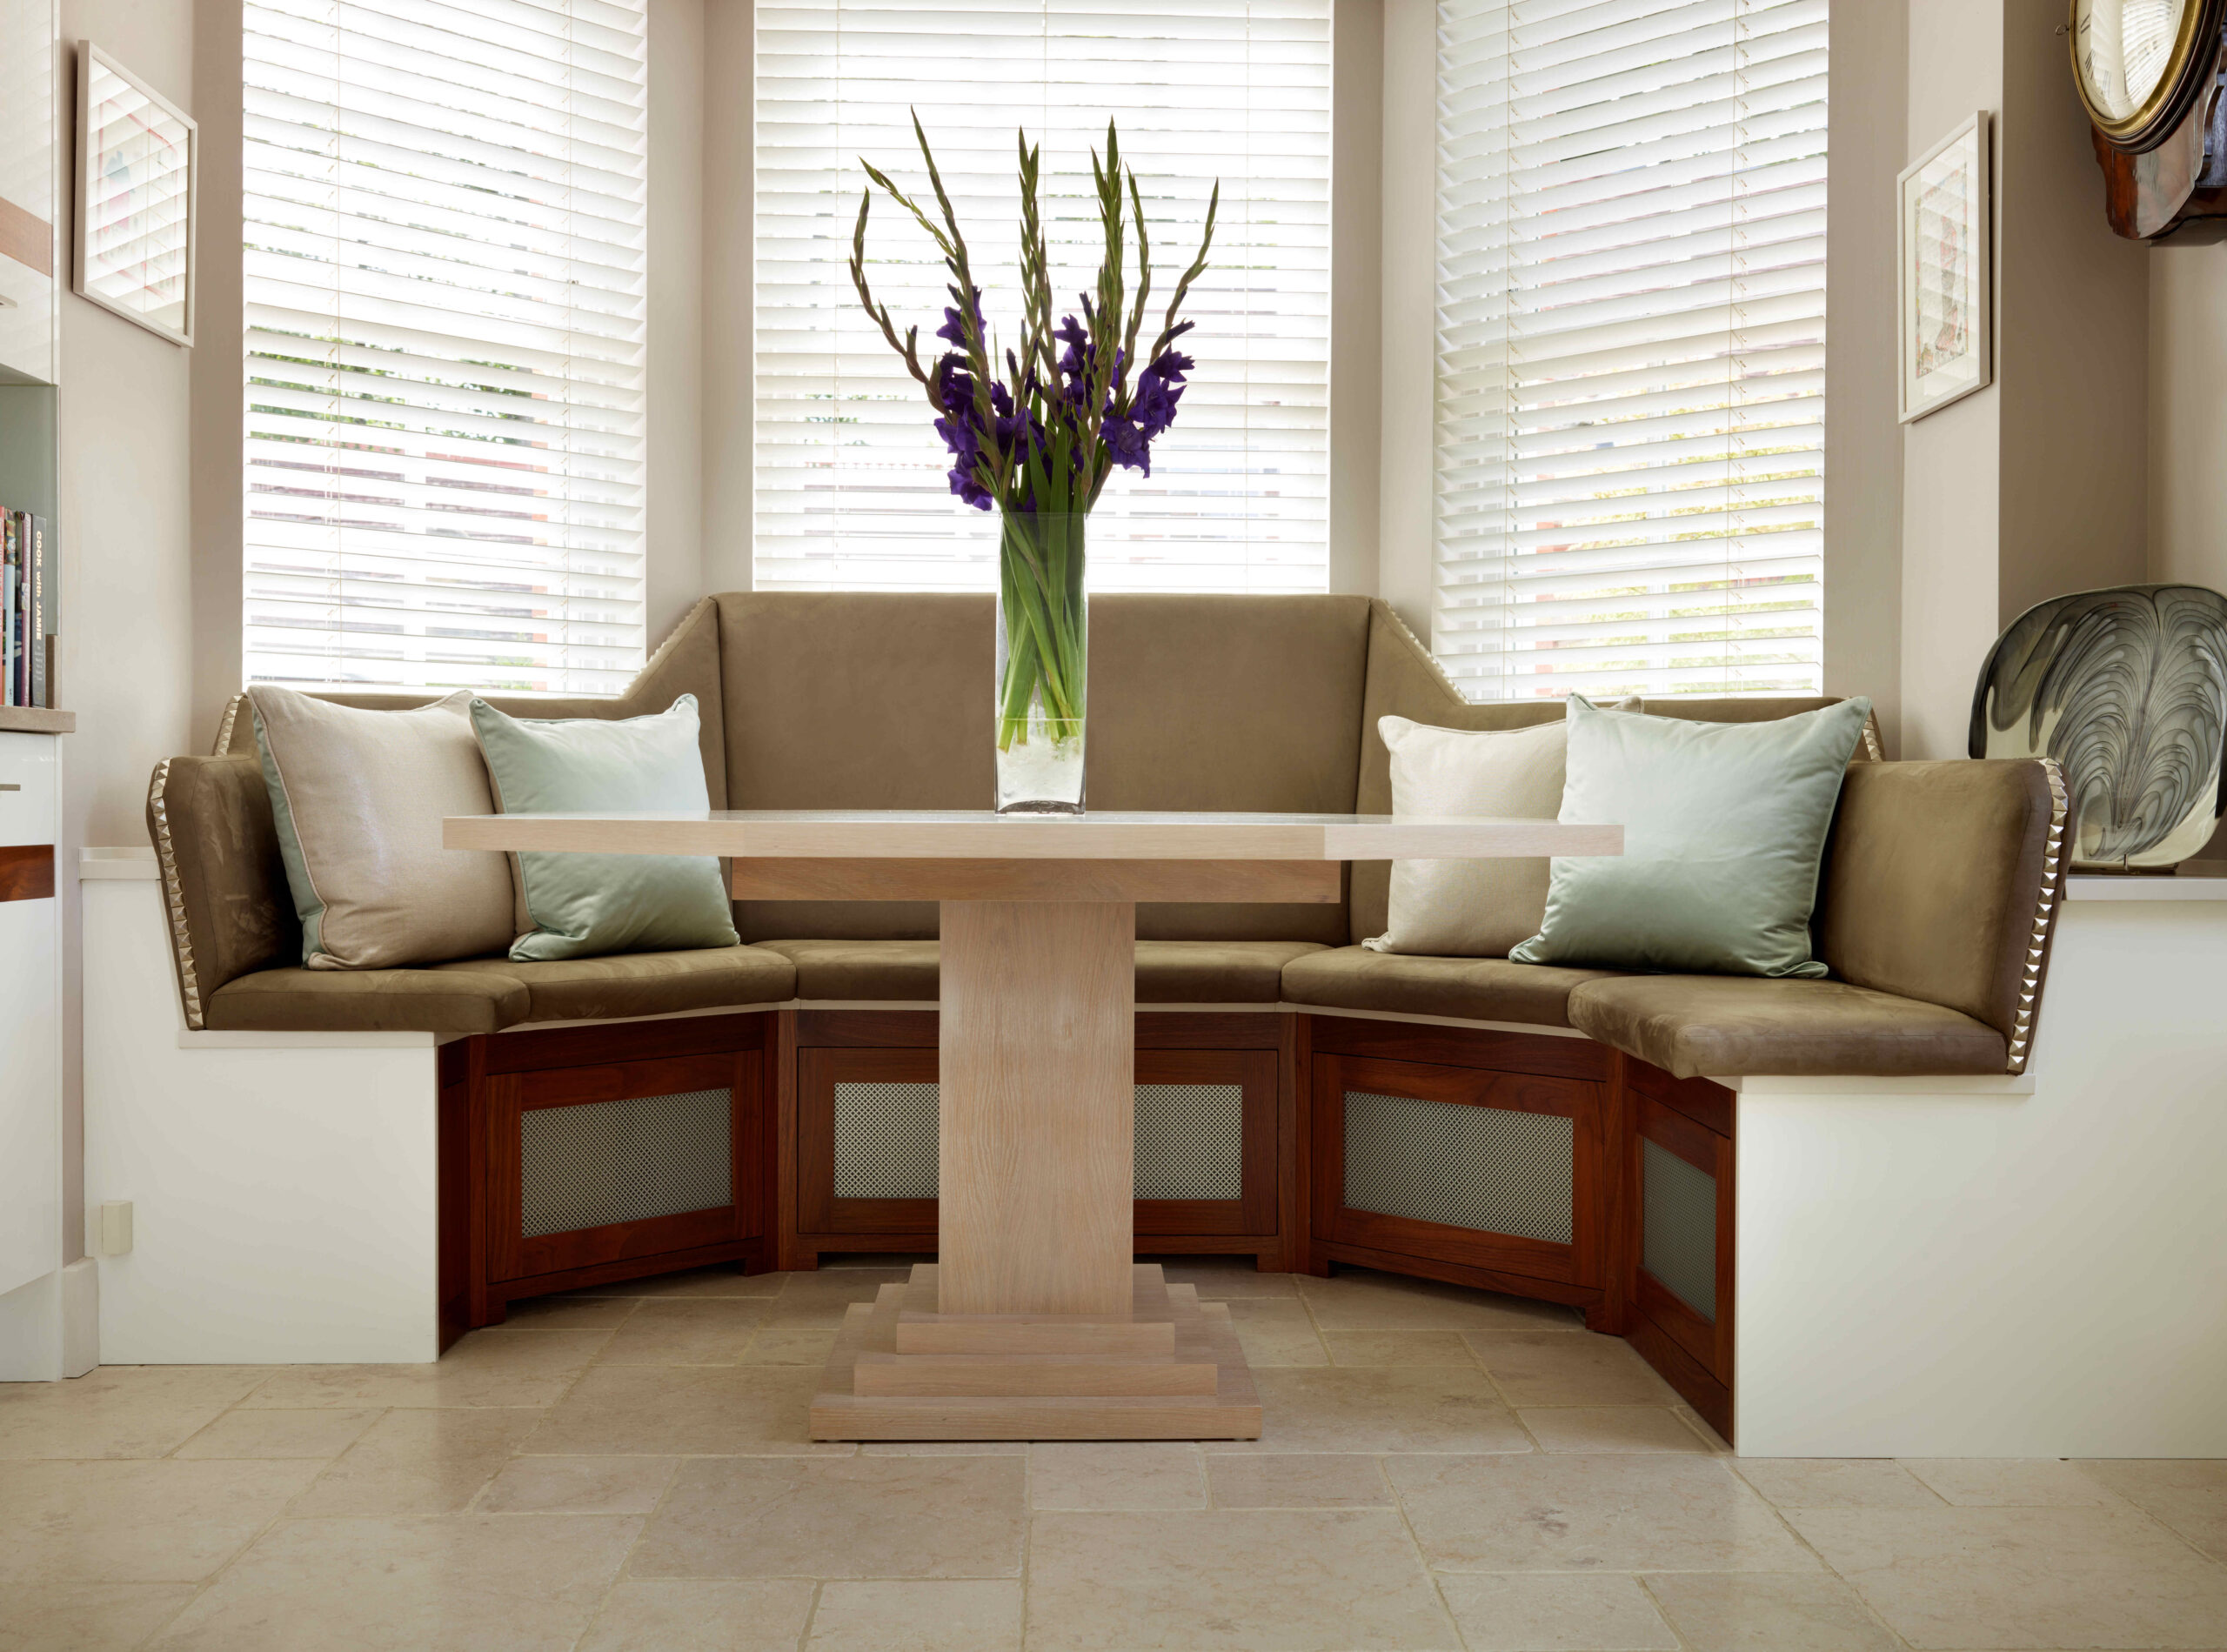 Banquette Seating - Marlow